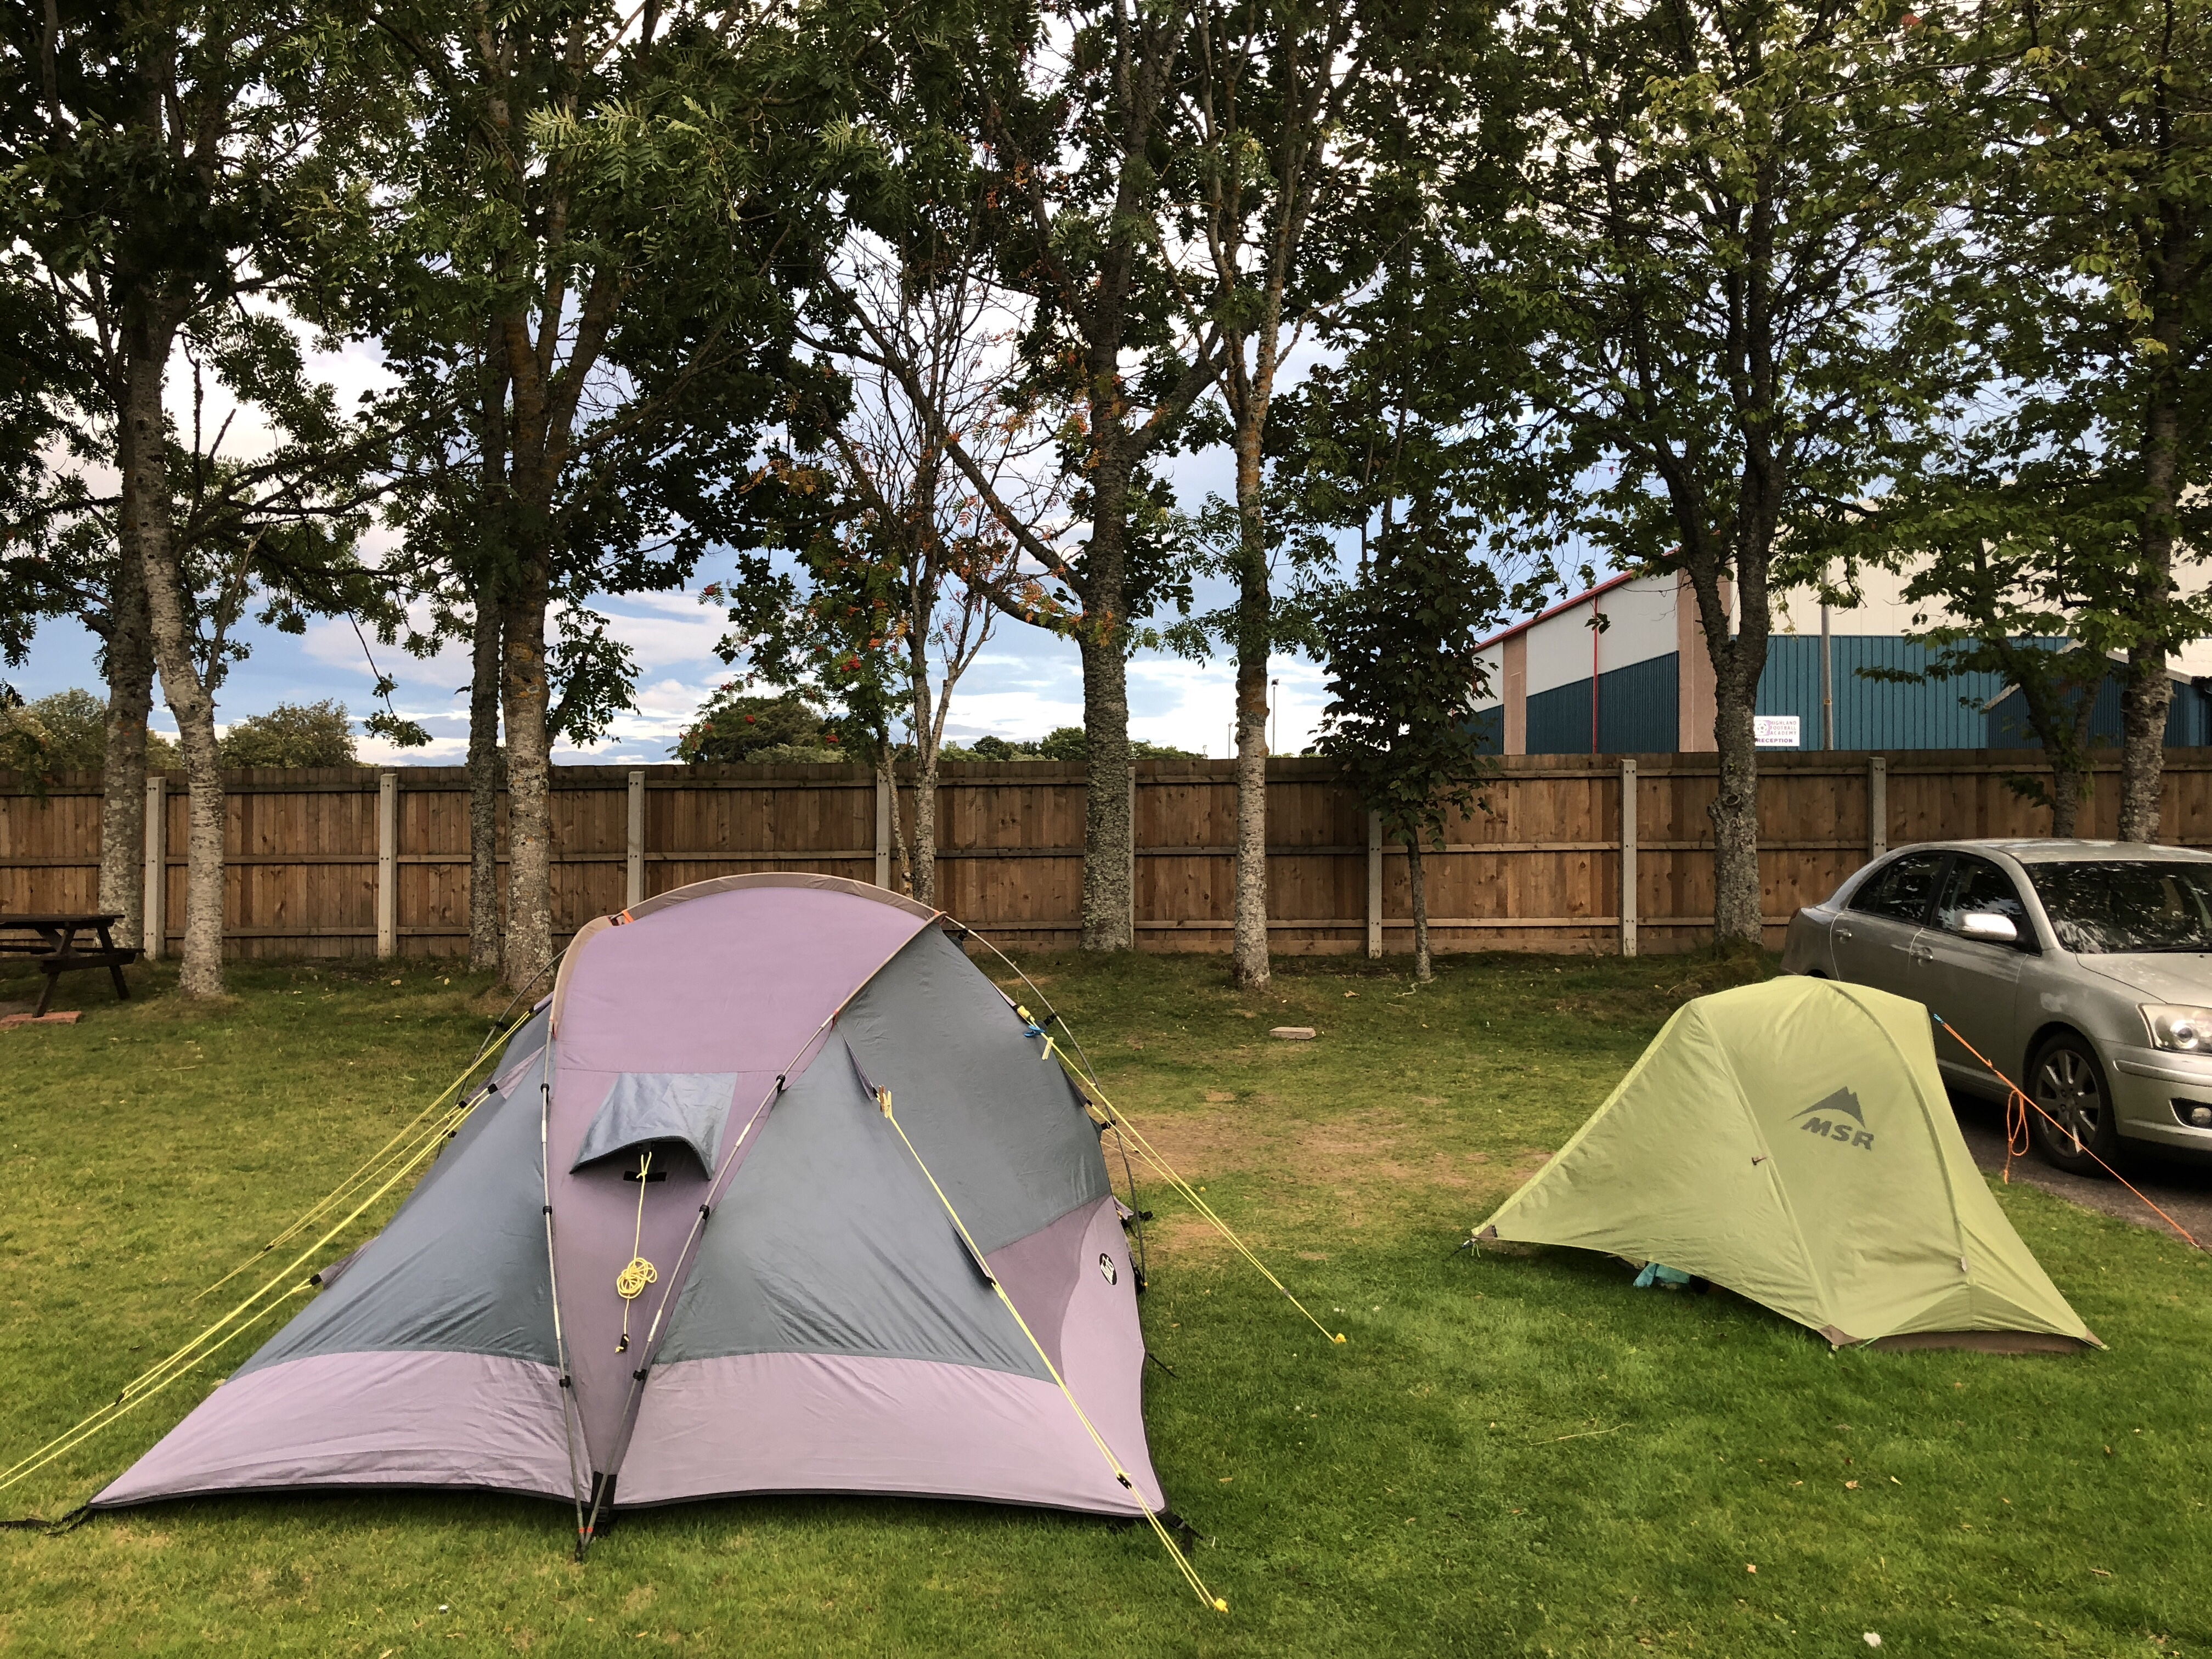 Camping at Jubilee Park Campsite